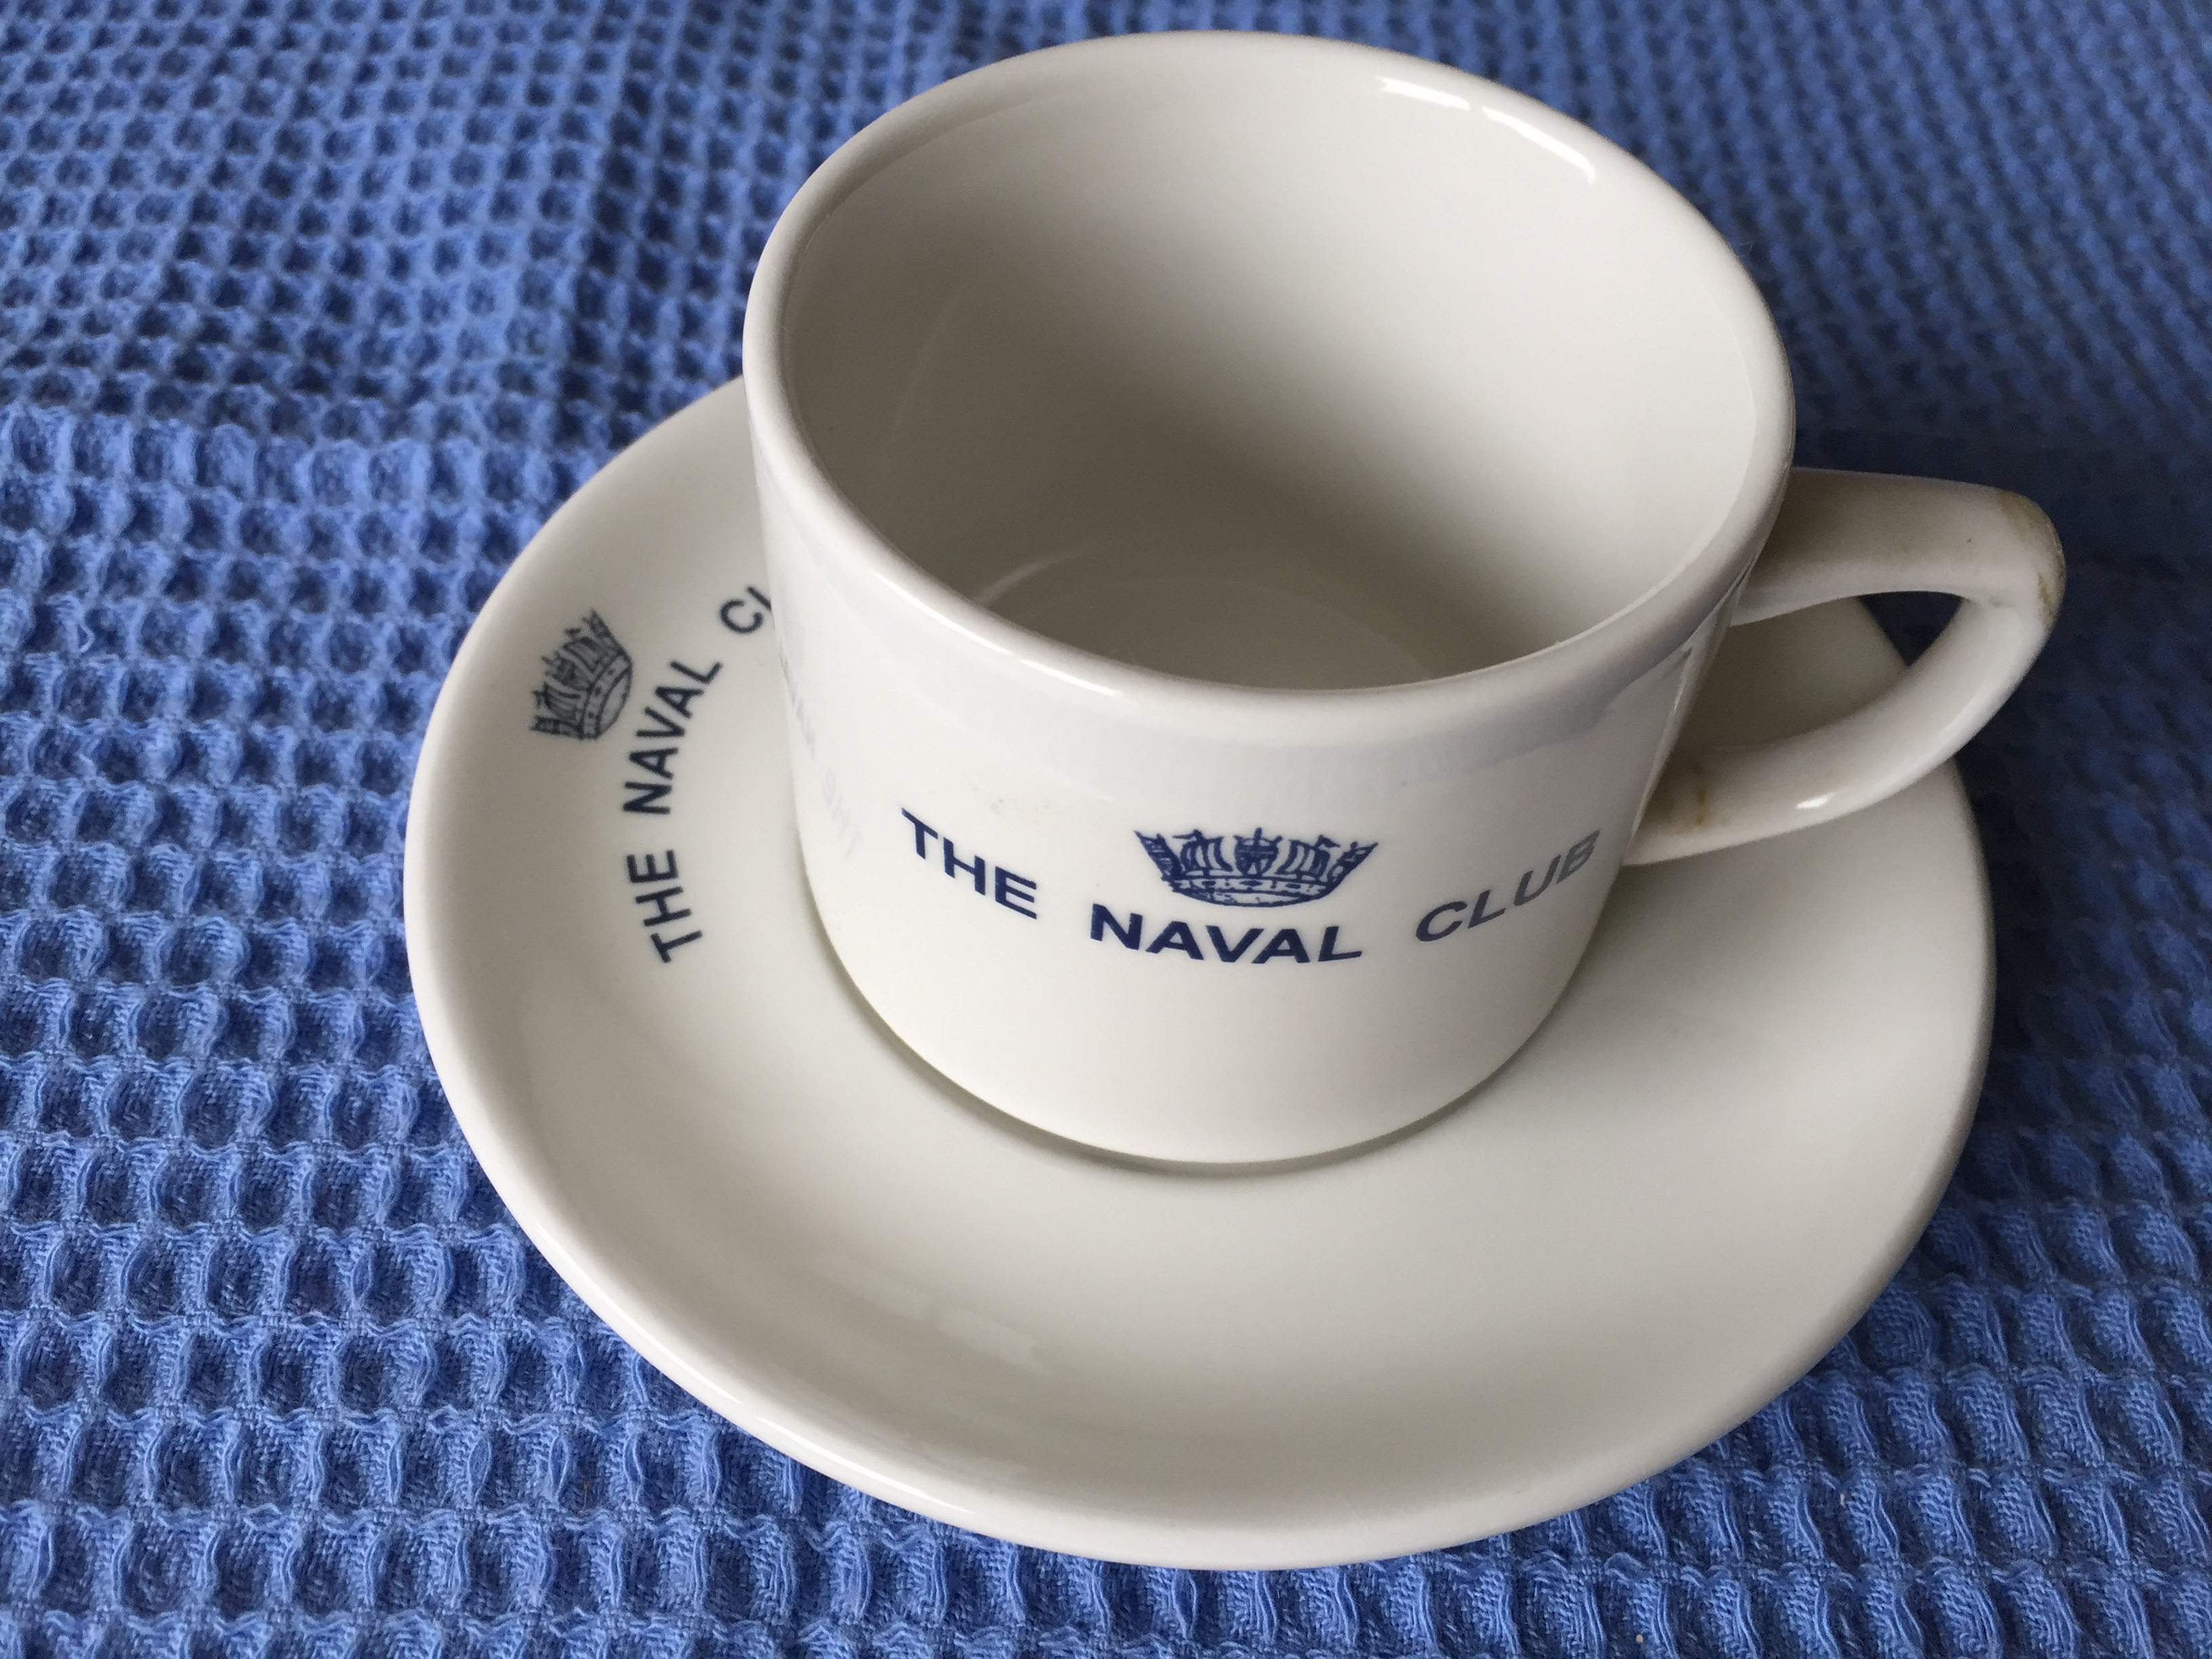 SOUVENIR CUP & SAUCER FROM THE NAVAL CLUB